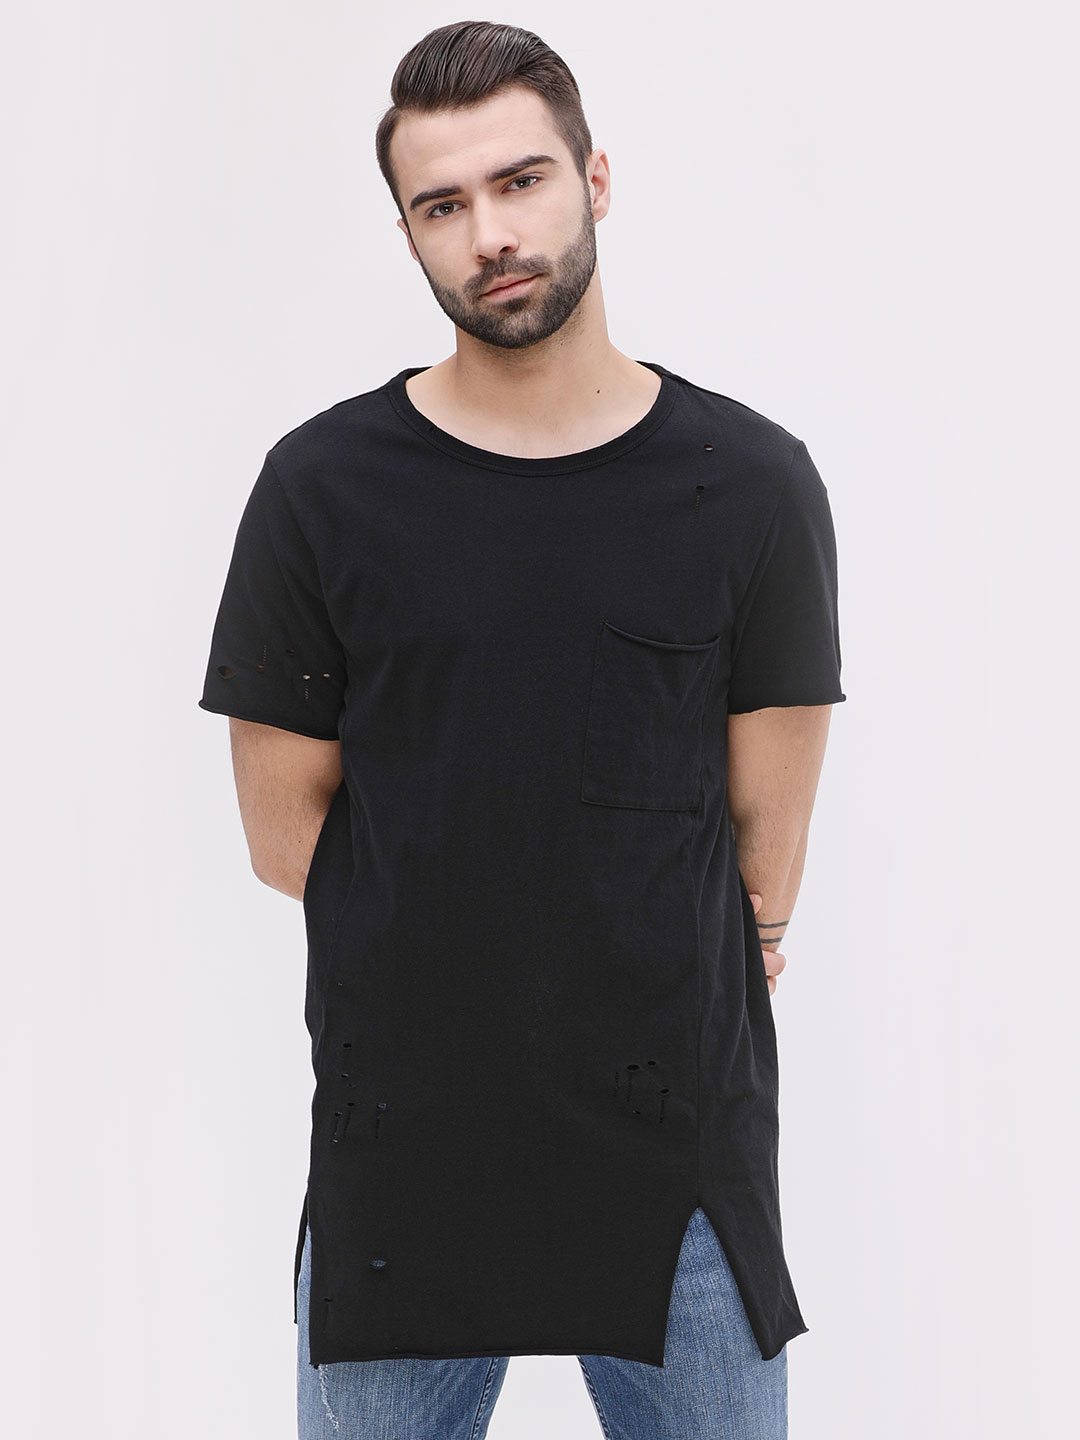 New Look Black Distressed T-Shirt With Patch Pocket 1